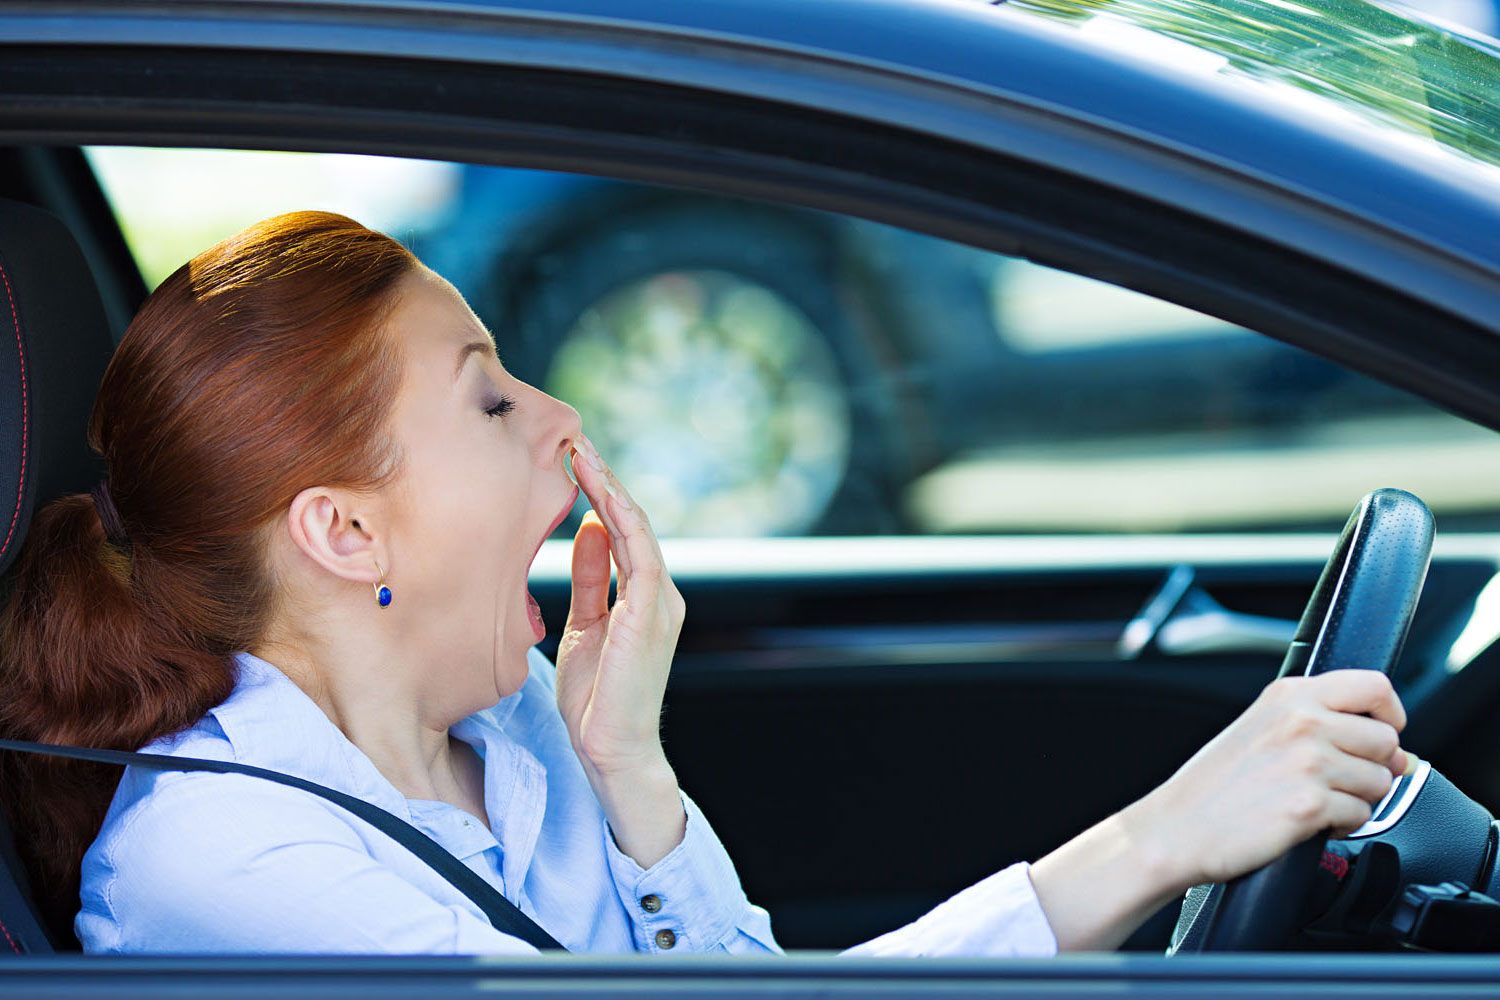 These signs indicate that you are about to get into a car accident